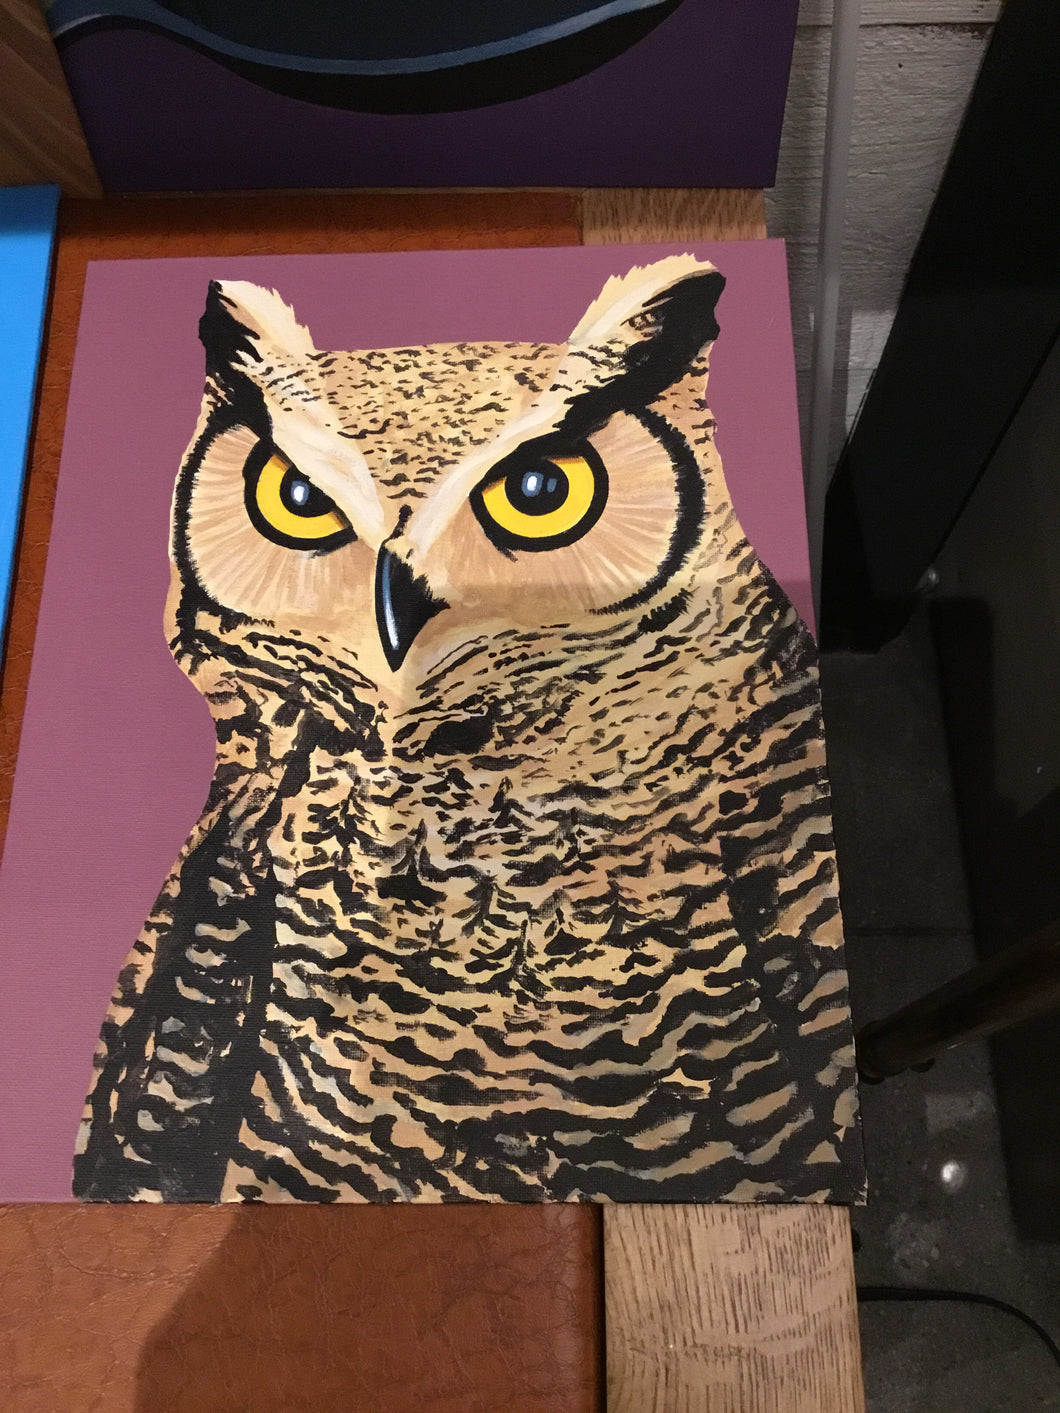 Owl Painting on Canvas 11x14